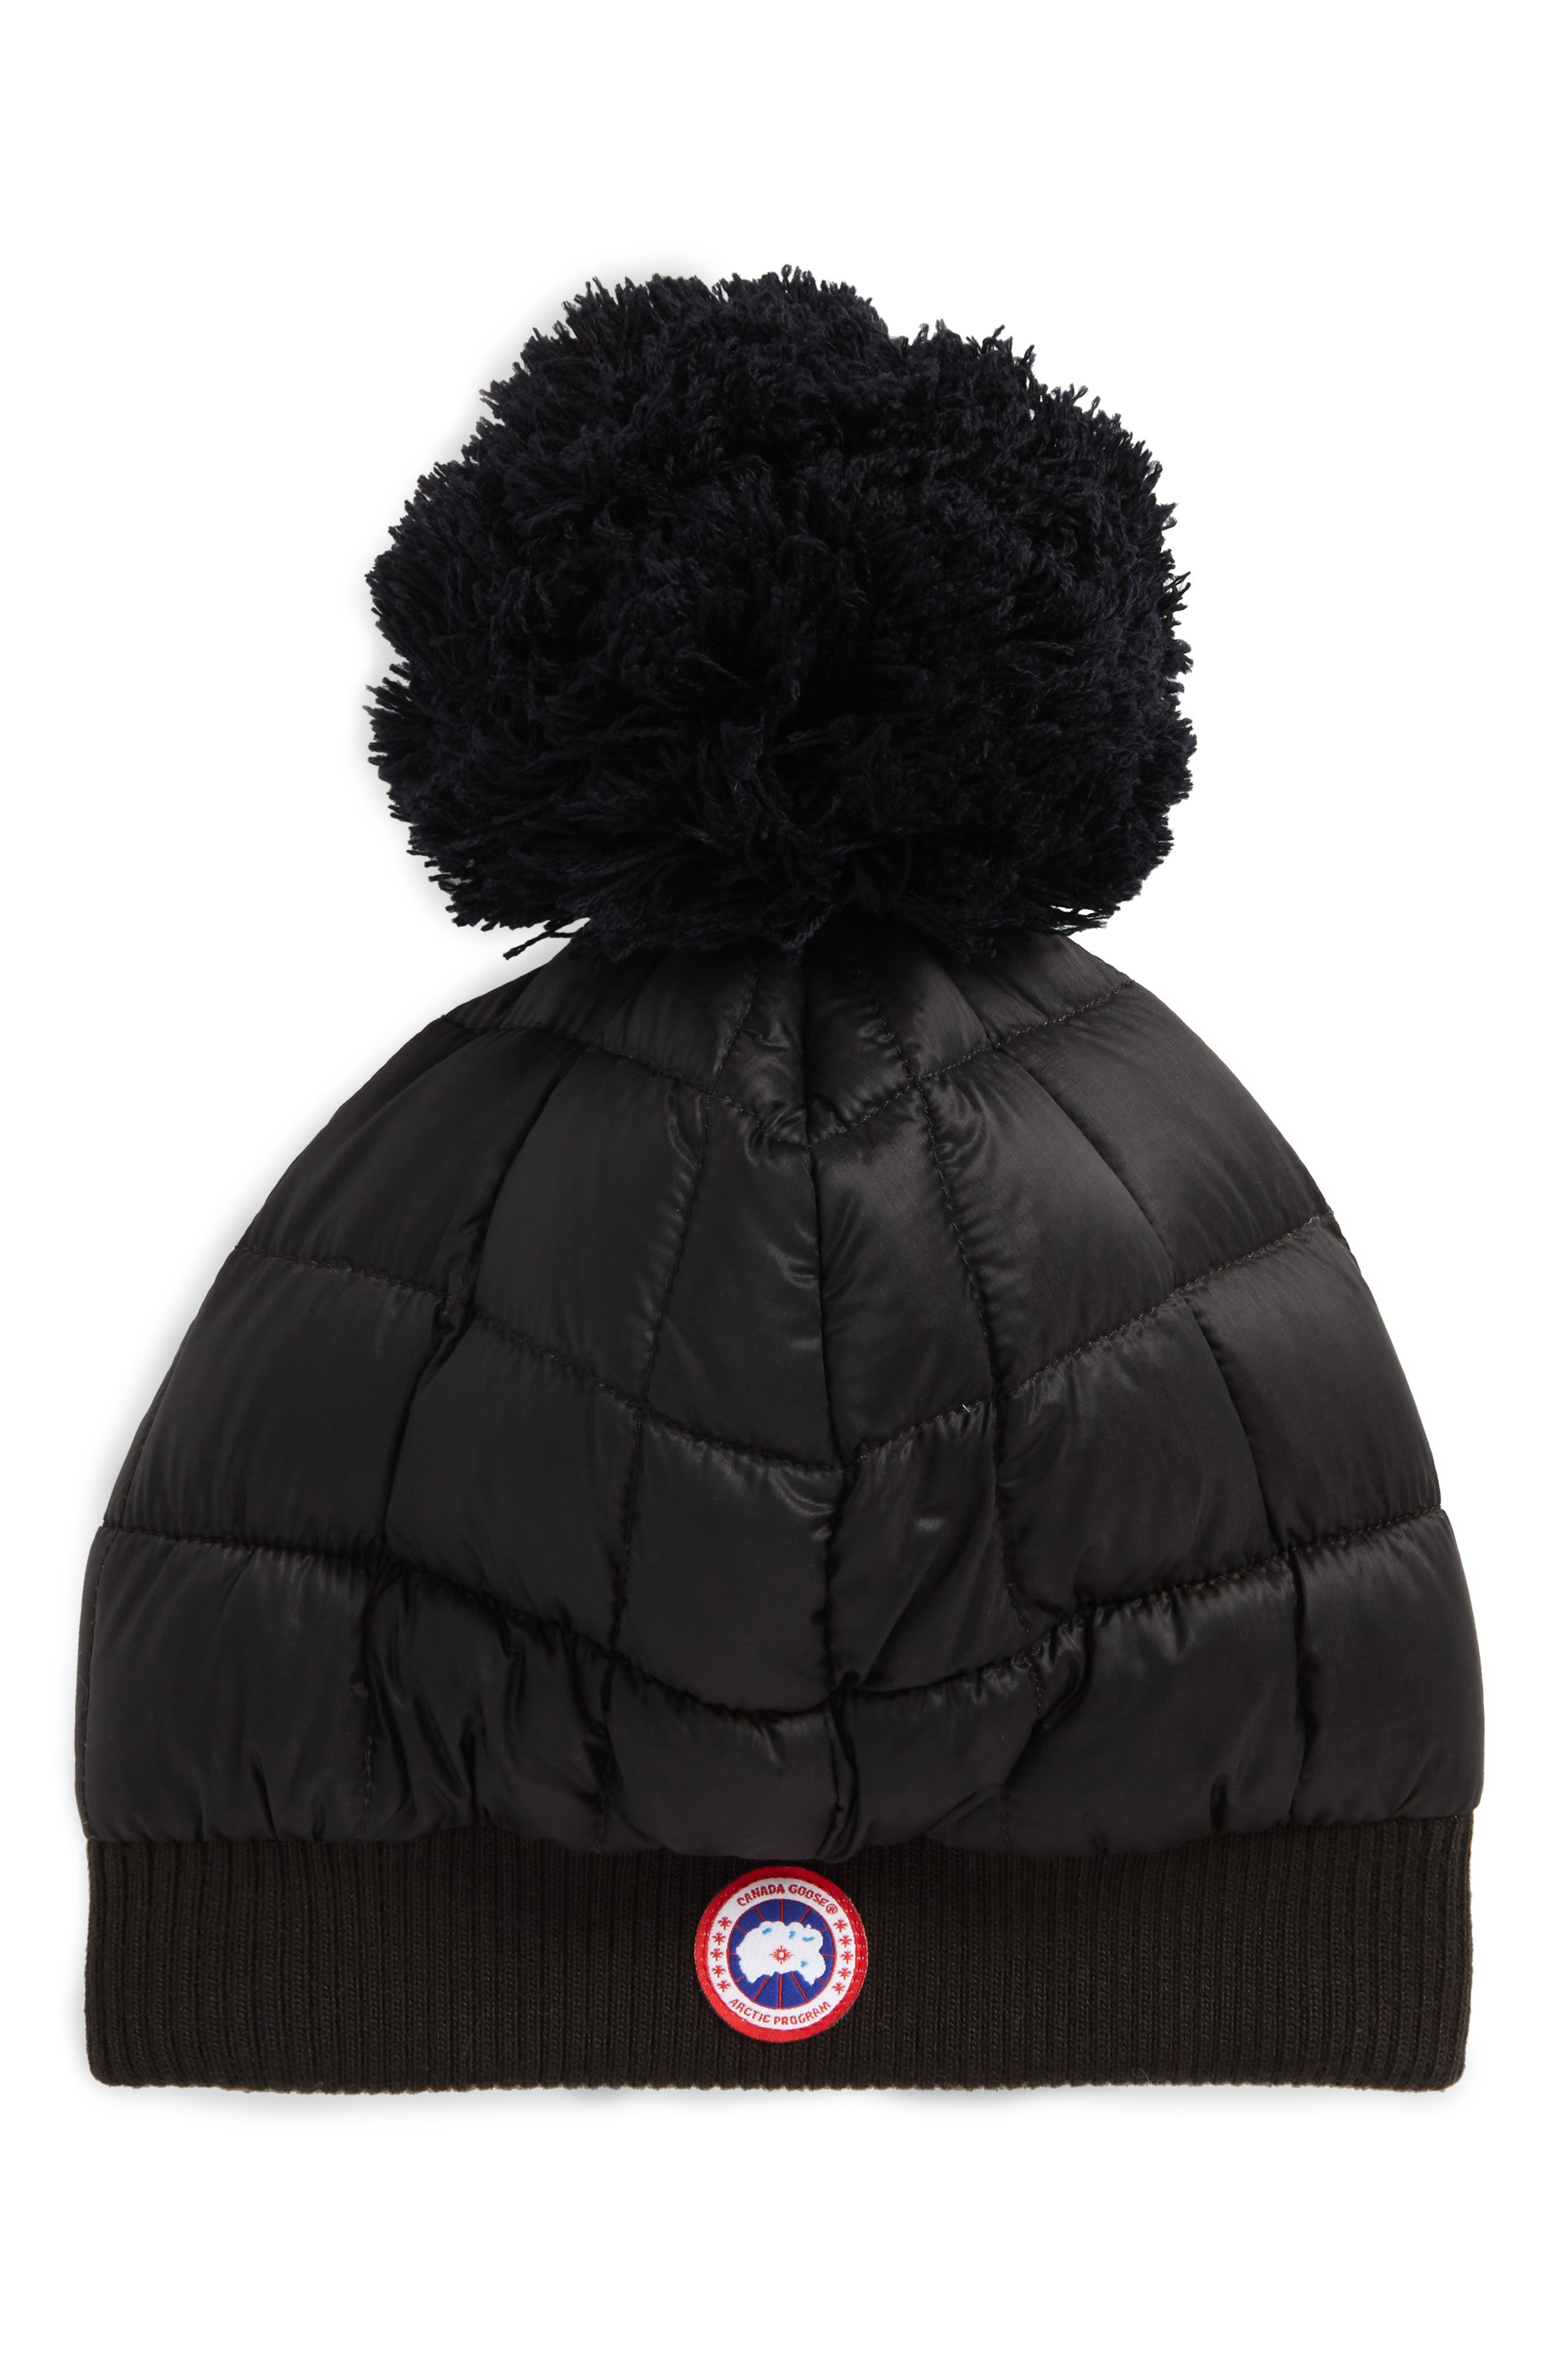 Alternate Image 1 Selected - Canada Goose Quilted Down Pom Beanie